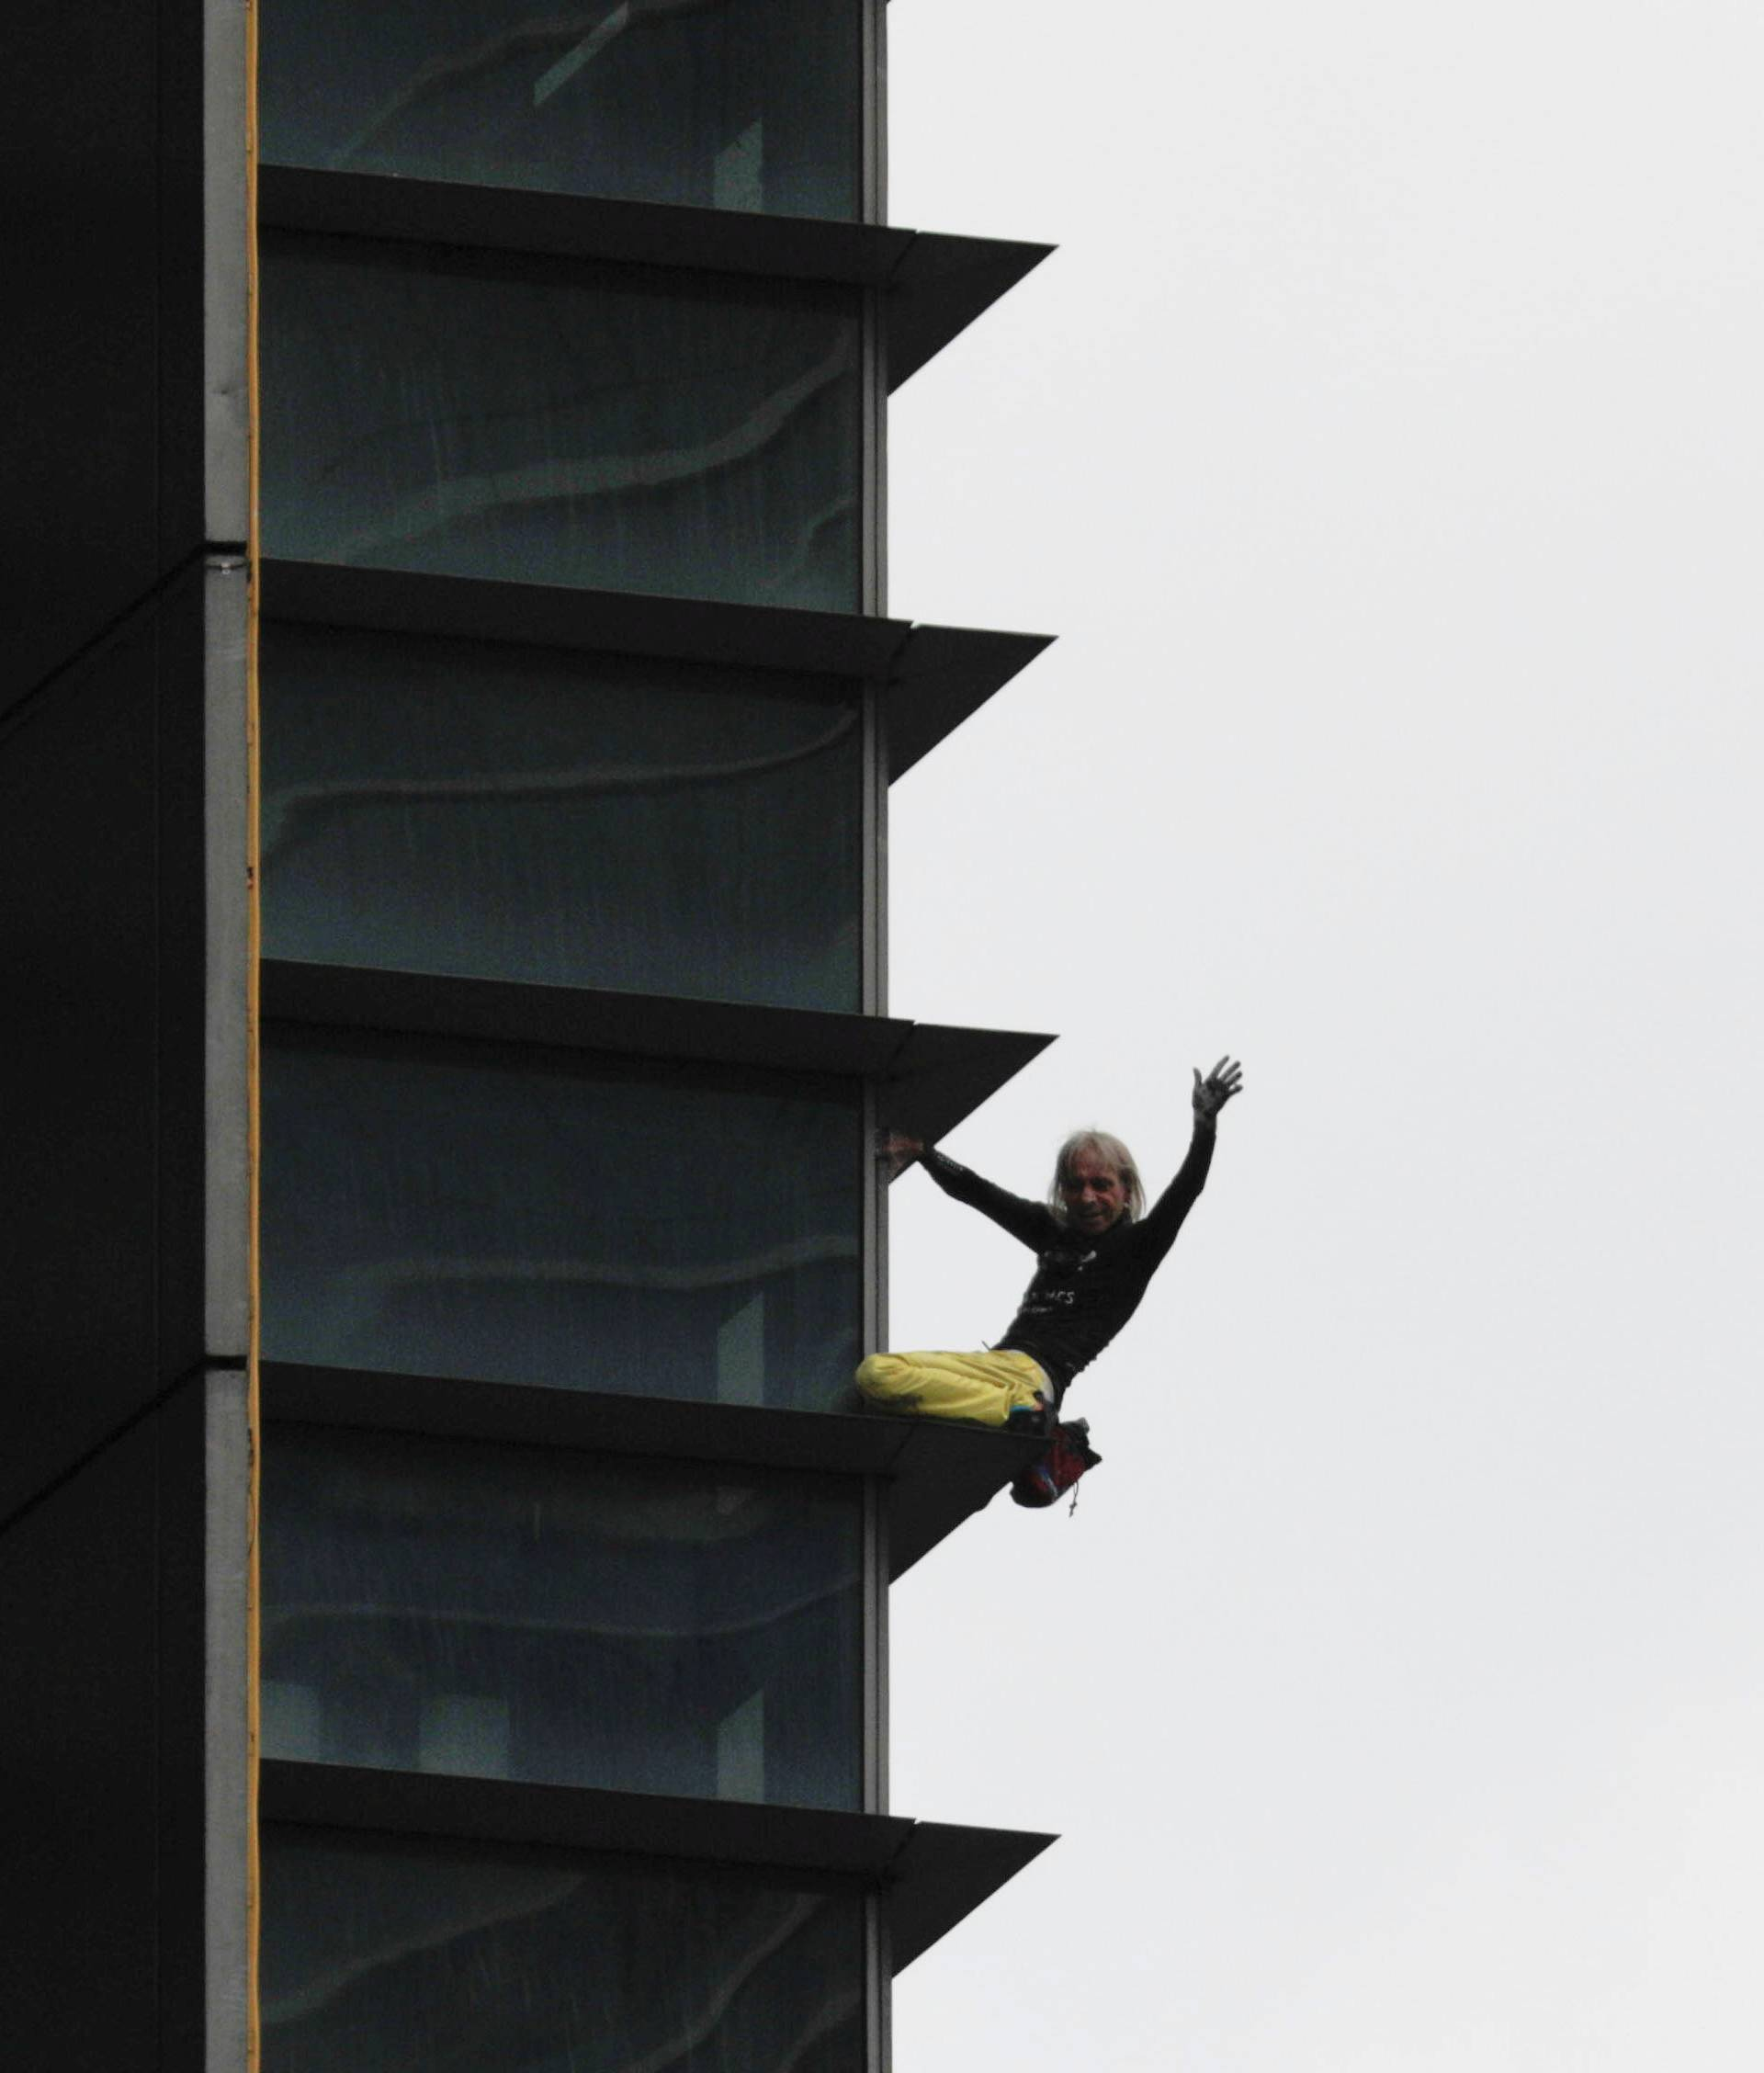 French climber Robert waves as he climbs down the 47-storey GT International Tower in Makati City